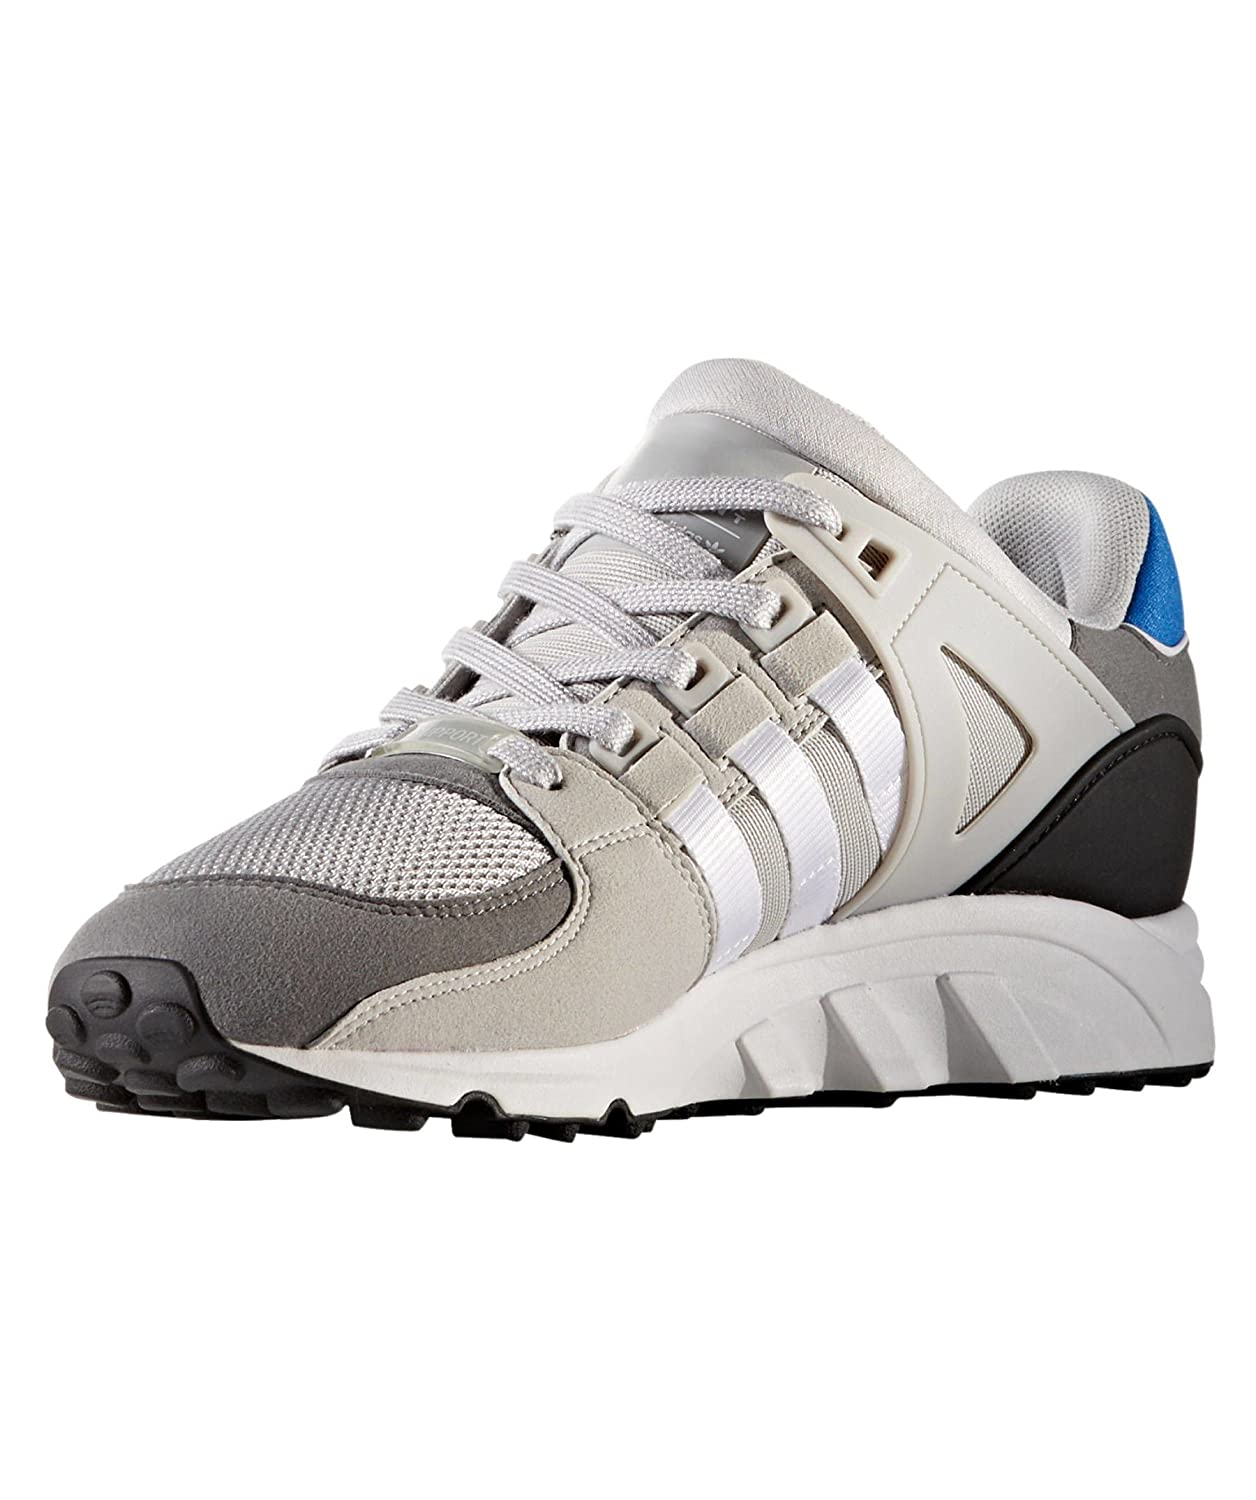 newest 16895 8f4d6 Adidas EQT Support RF Basket Mode Homme Amazon.fr Chaussures